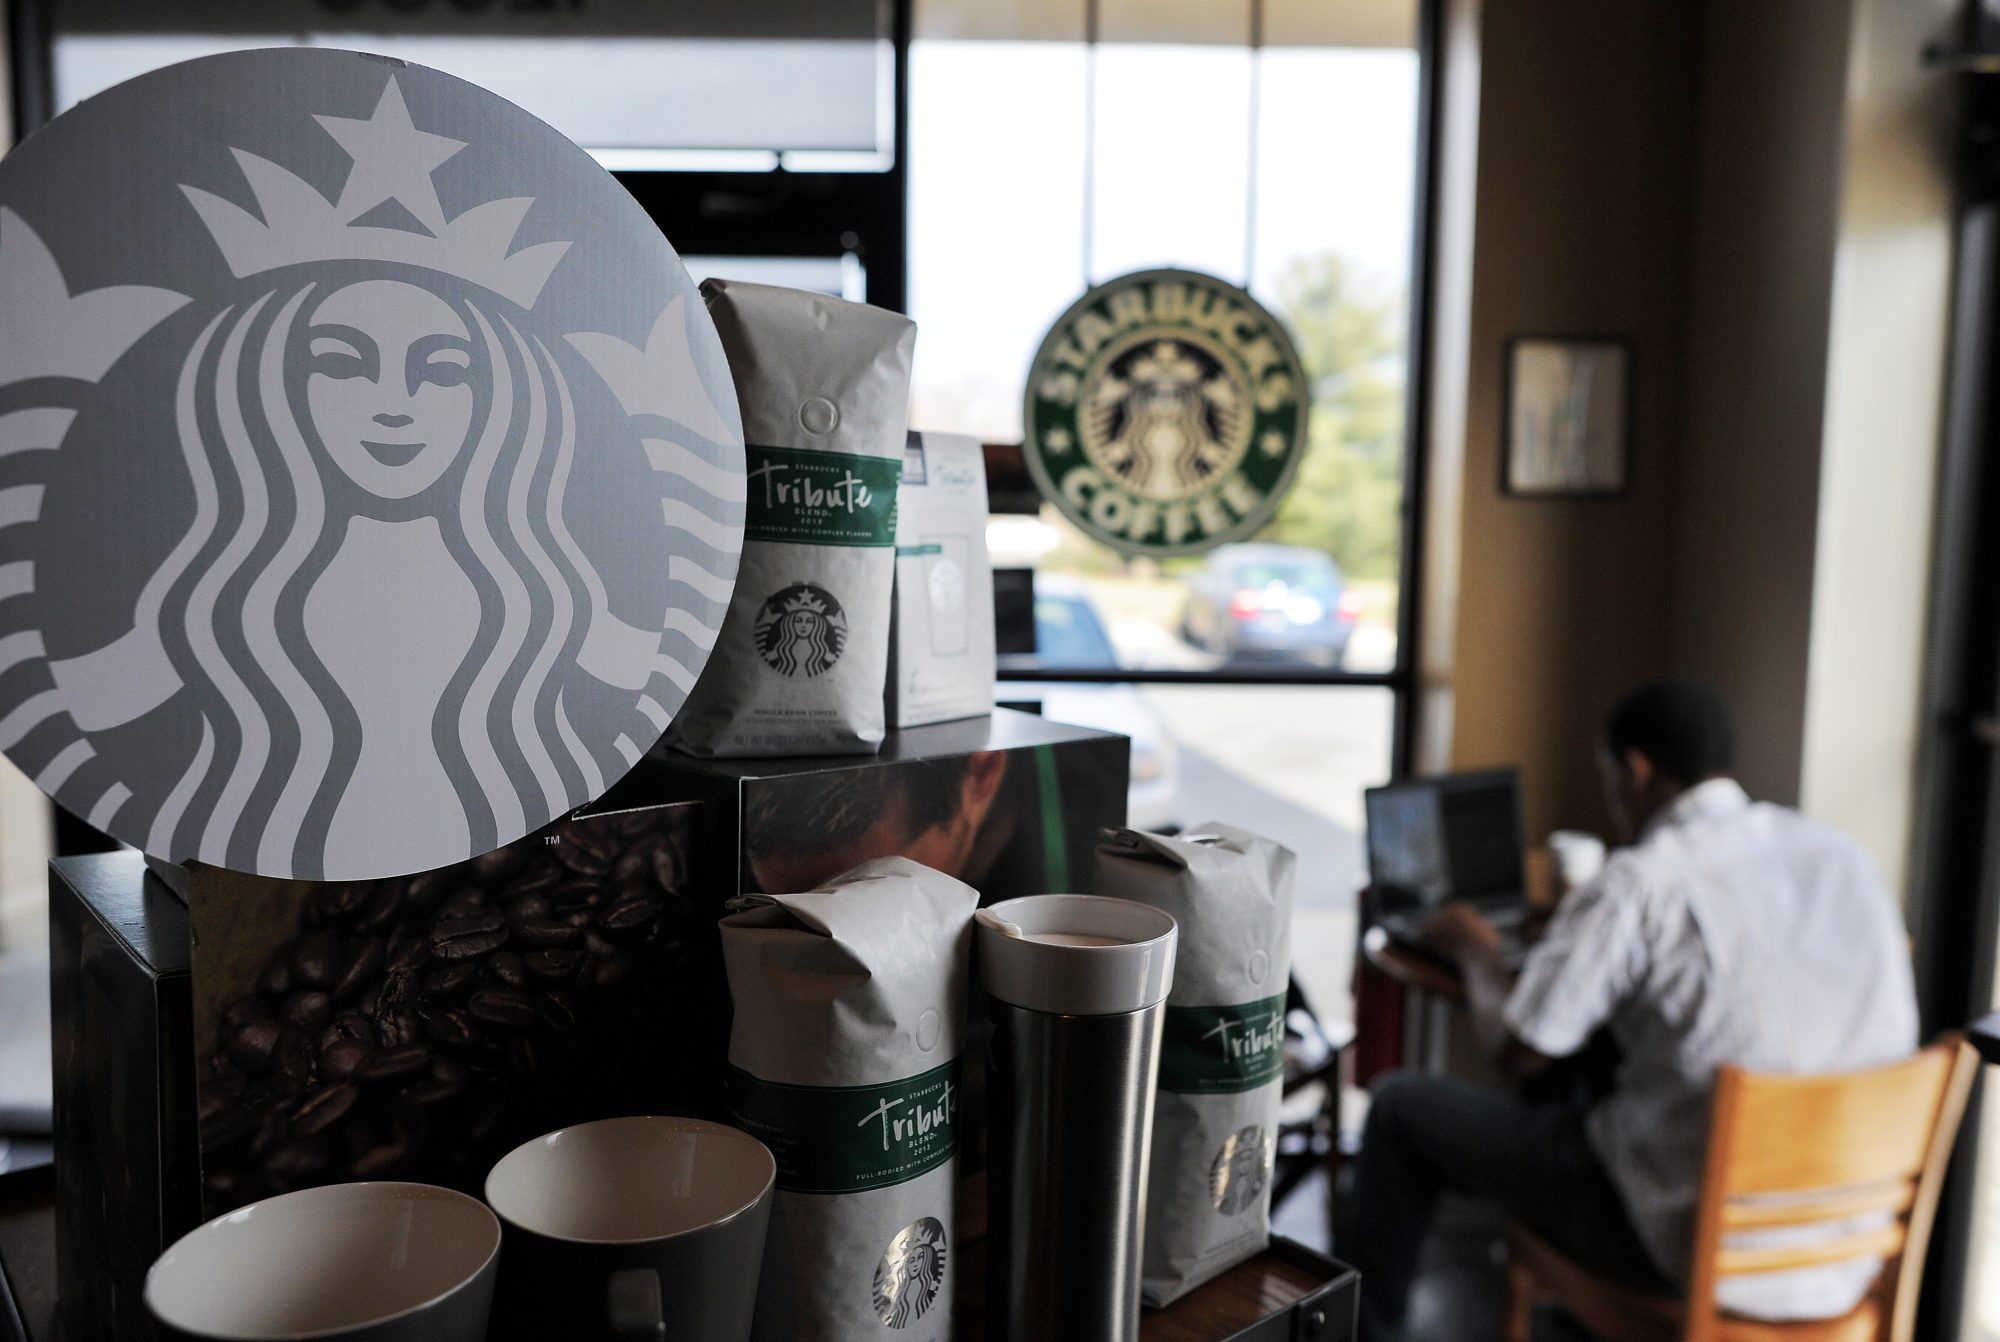 Starbucks to Block Porn From Its Free Wifi in 2019, Report Says